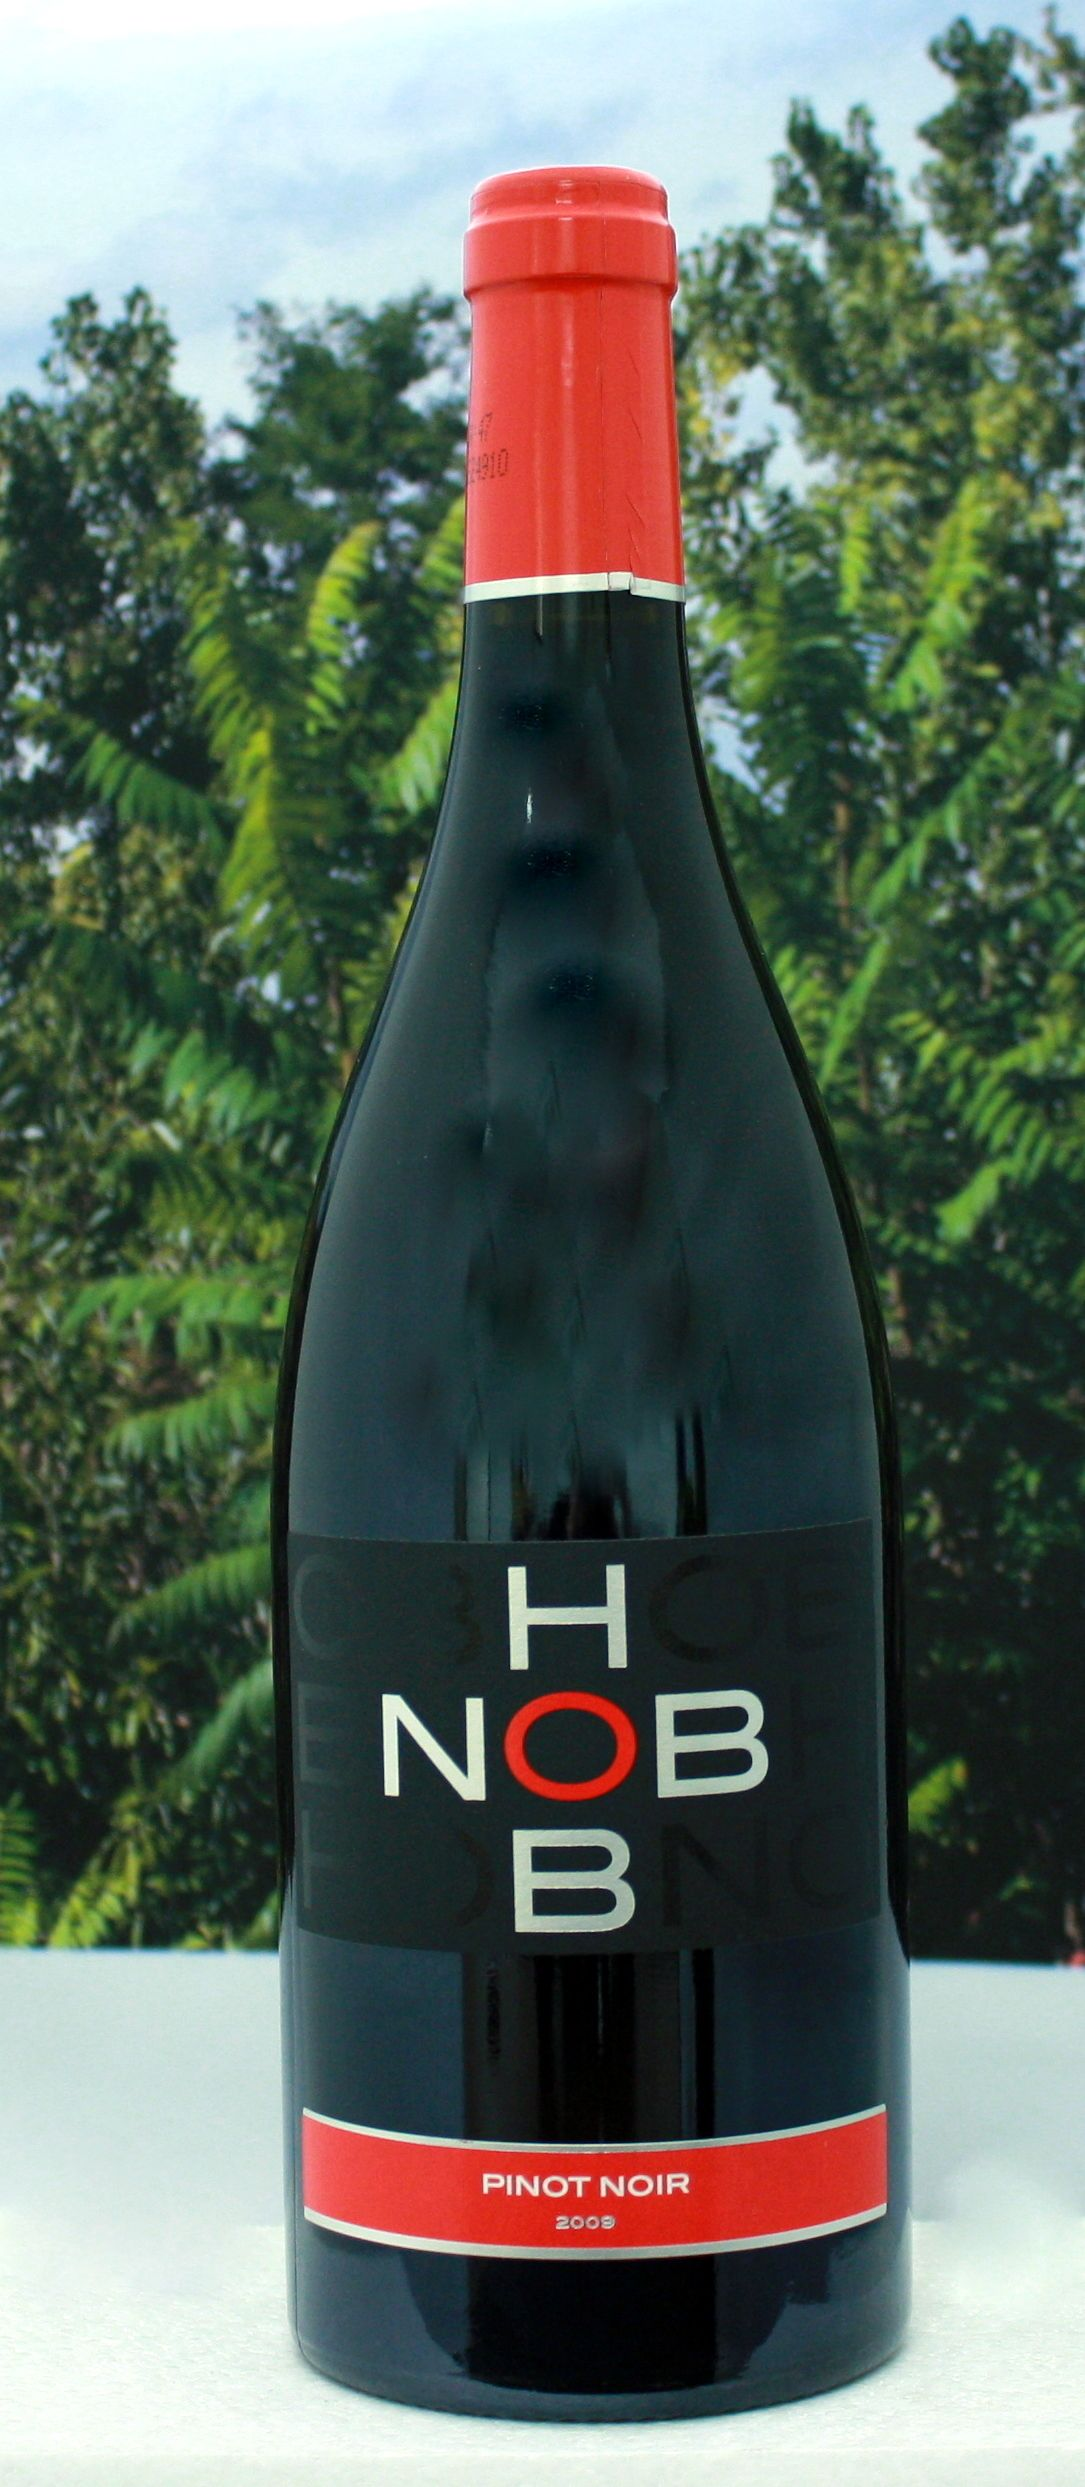 French pinot noir refined and elegant pinot for any occasion